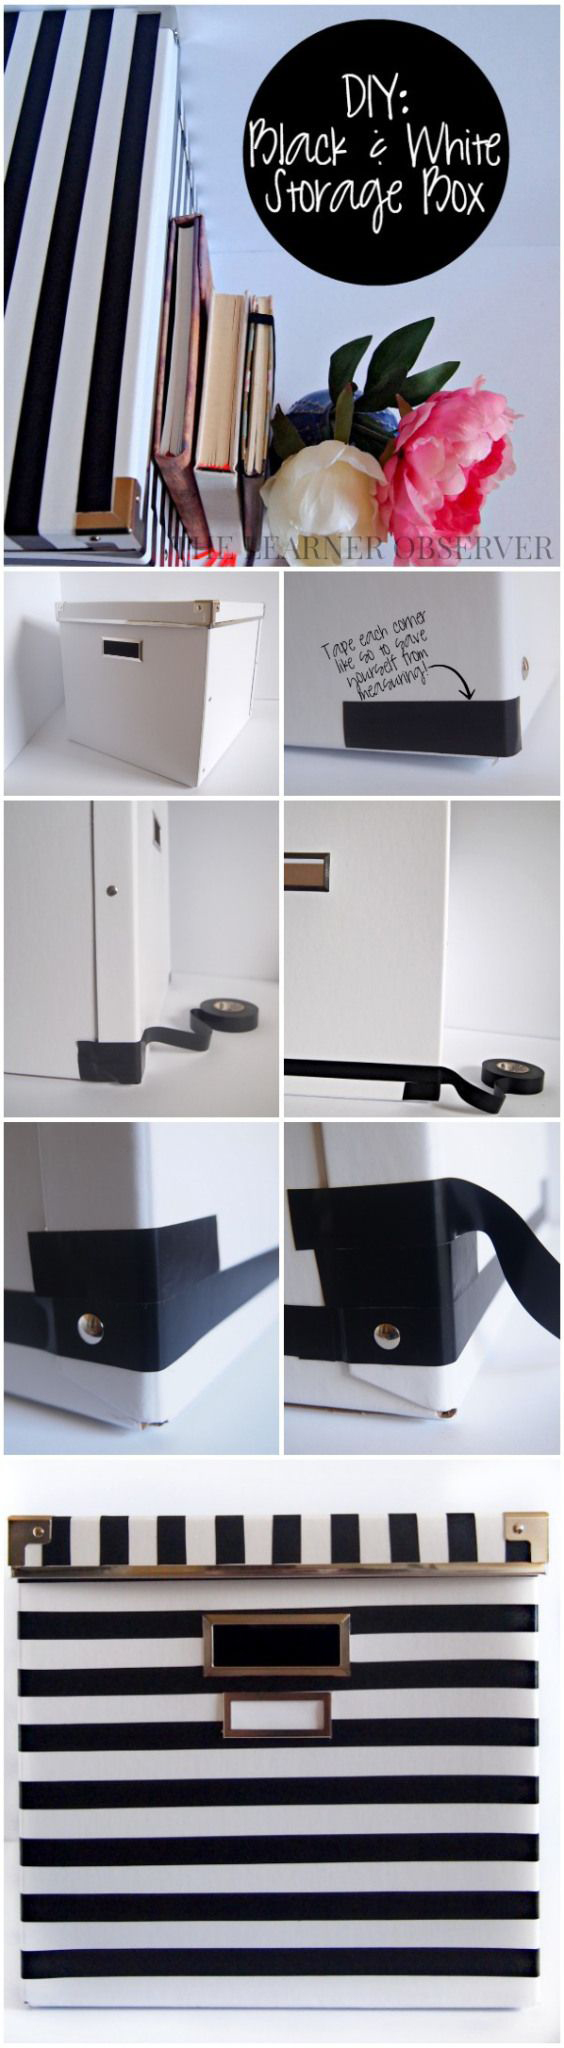 18 Brilliantly Ingenious Storage Ideas and Organizers t ~ 062515_Diy Dorm Room Storage Ideas